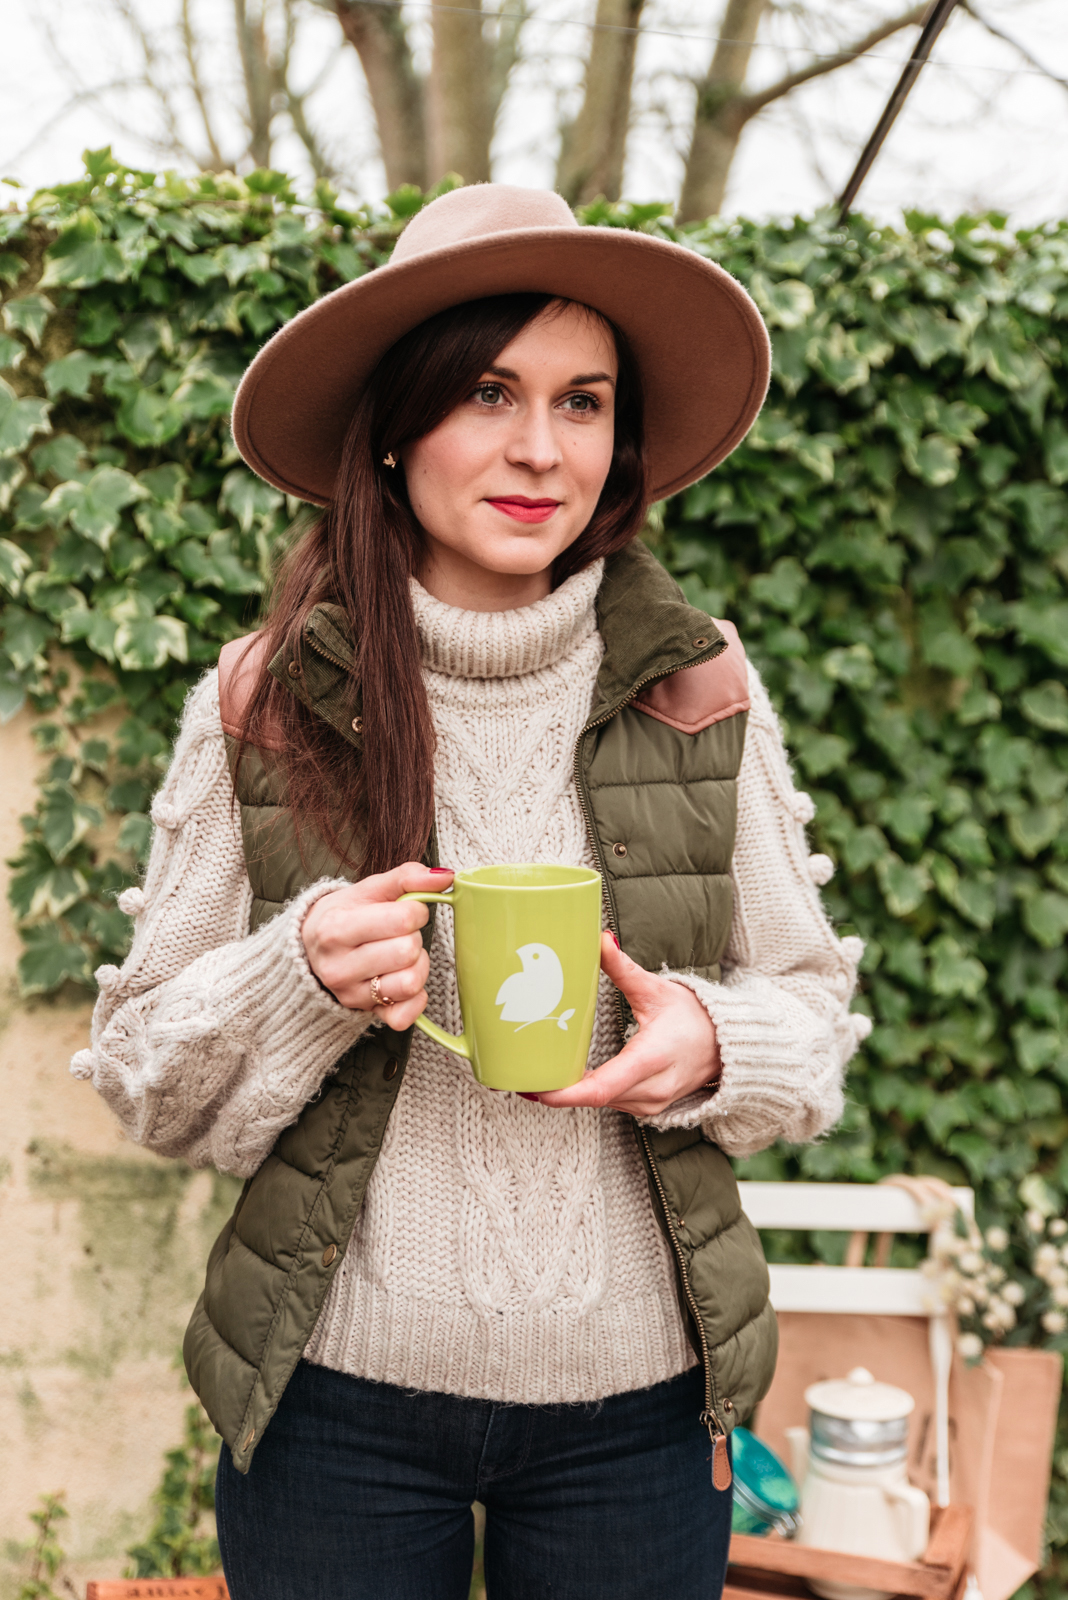 Blog-Mode-And-The-City-Lifestyle-lovely-green-7